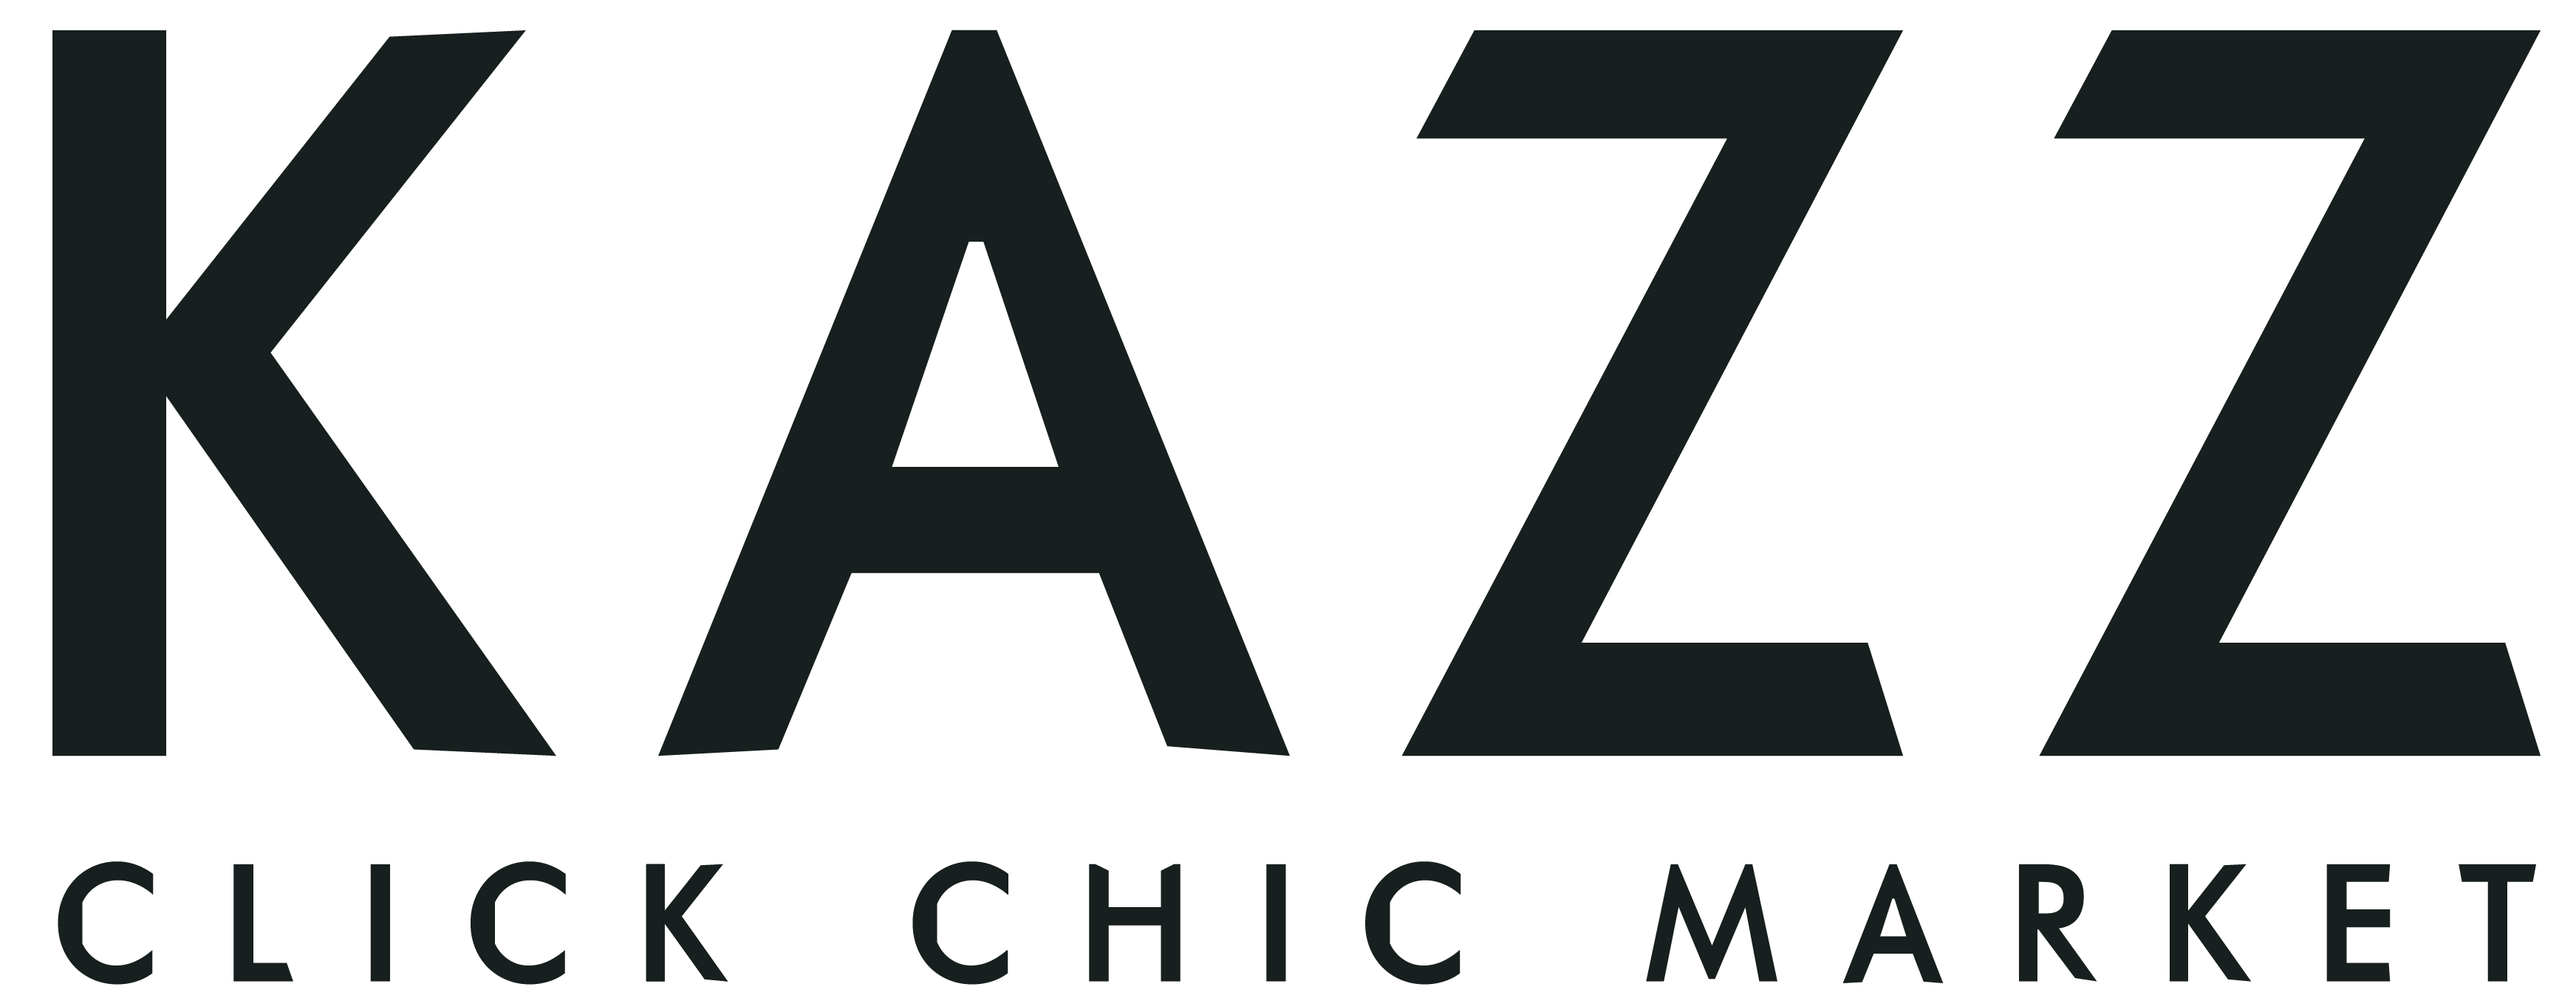 KAZZ Market Worldwide